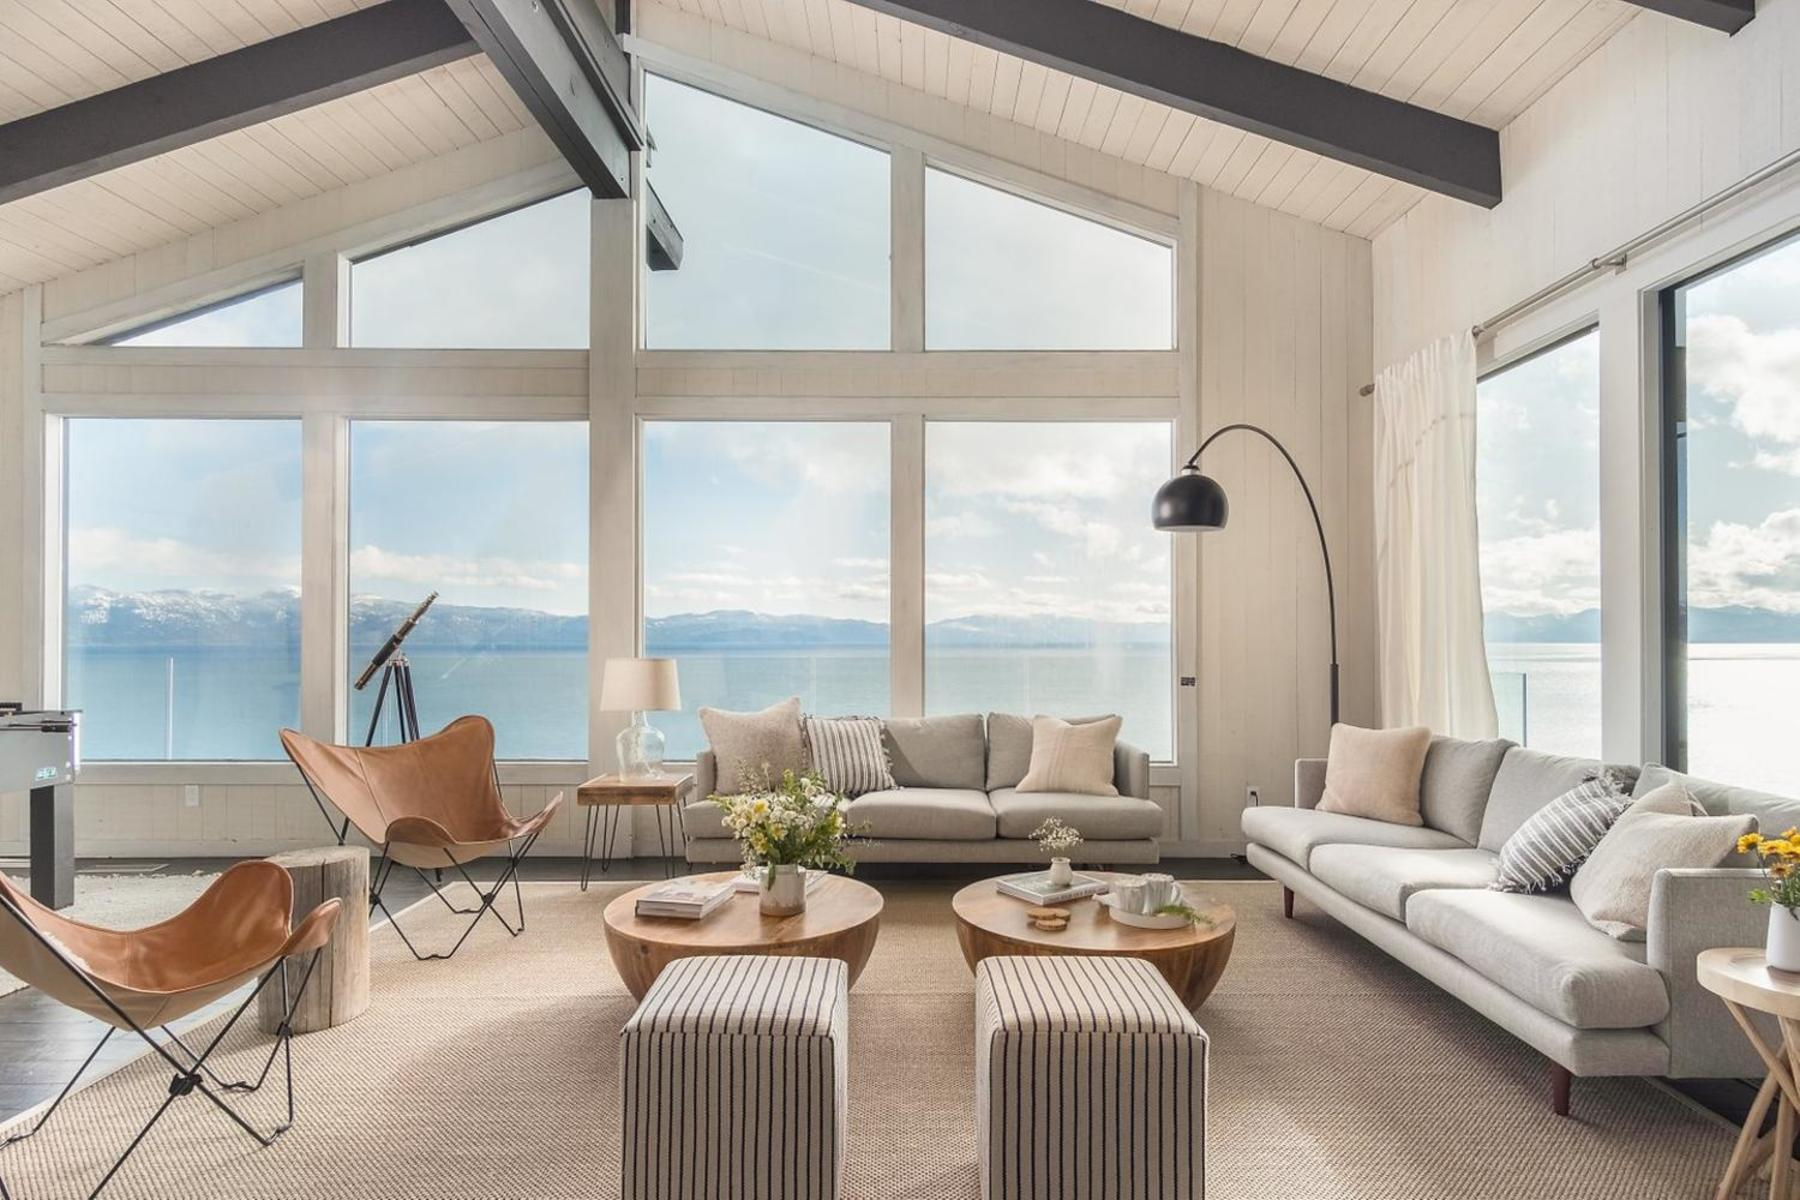 Single Family Homes for Active at Panoramic Views of Lake Tahoe 226 Rim Drive Tahoe Vista, California 96148 United States